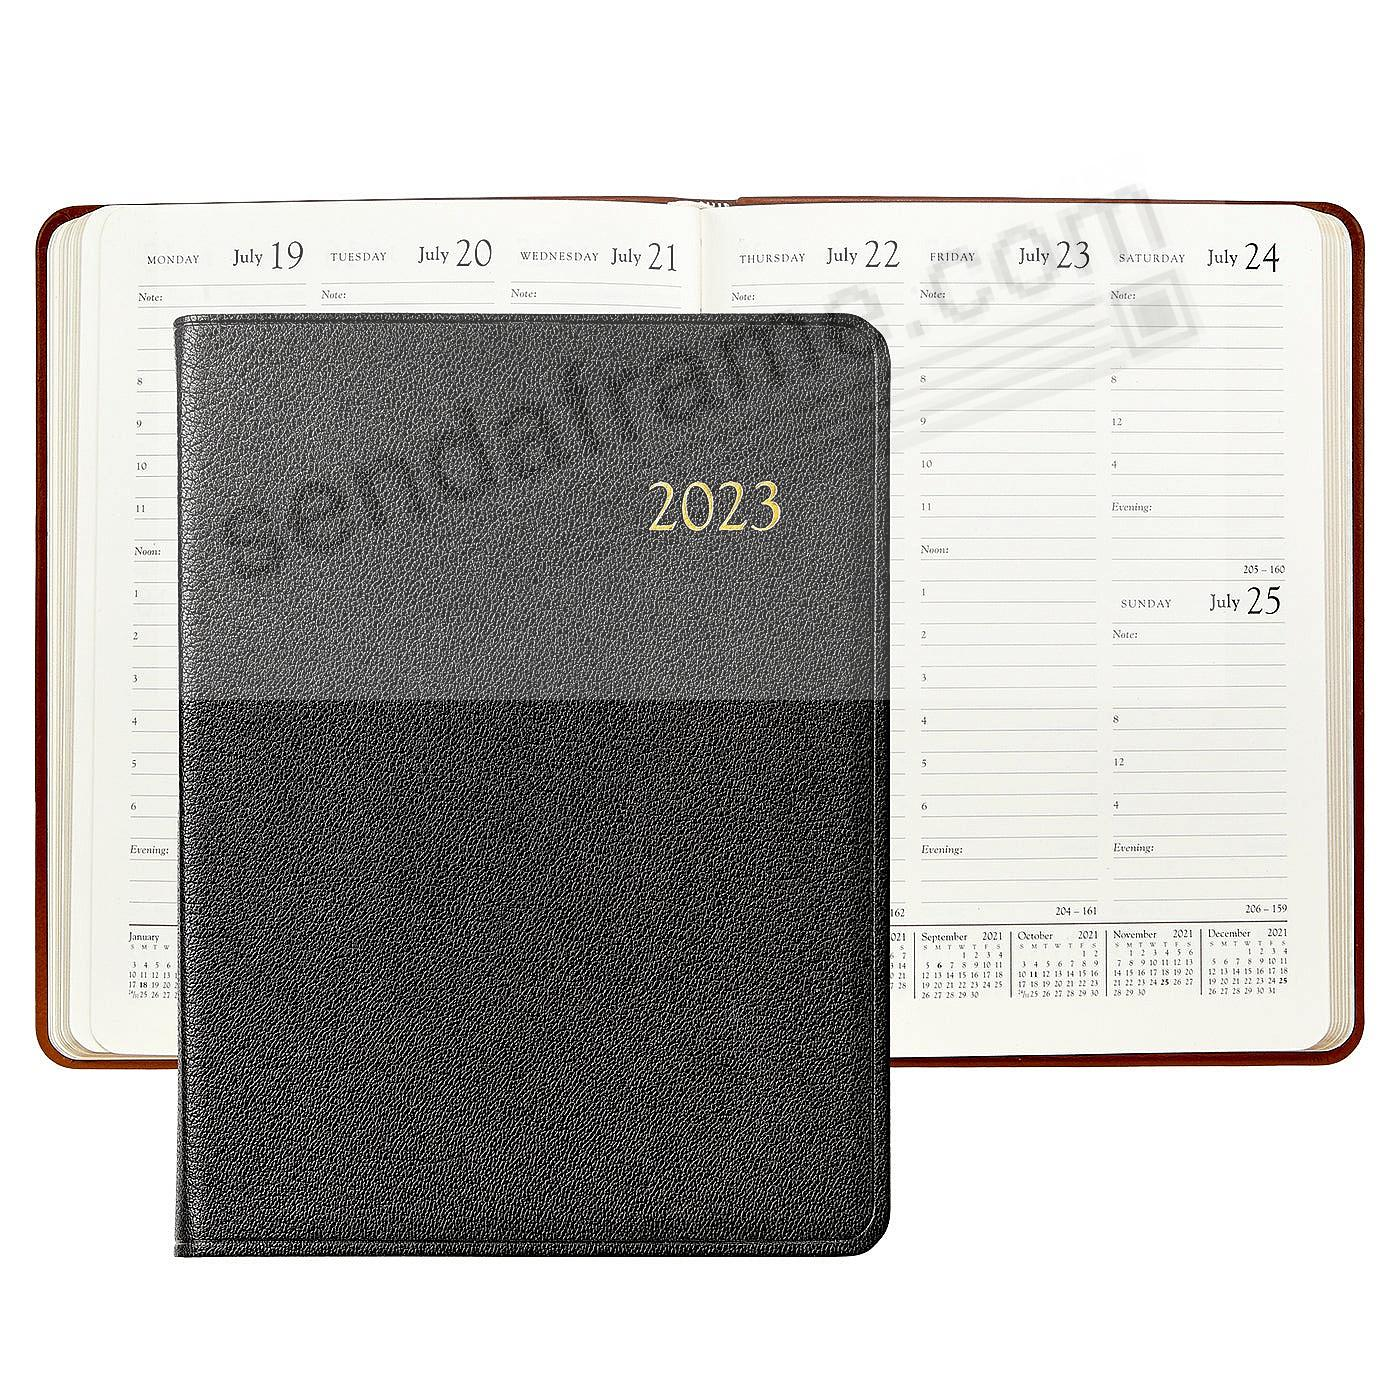 2018 BLACK Goatskin Leather 9in Desk Diary by Graphic Image™